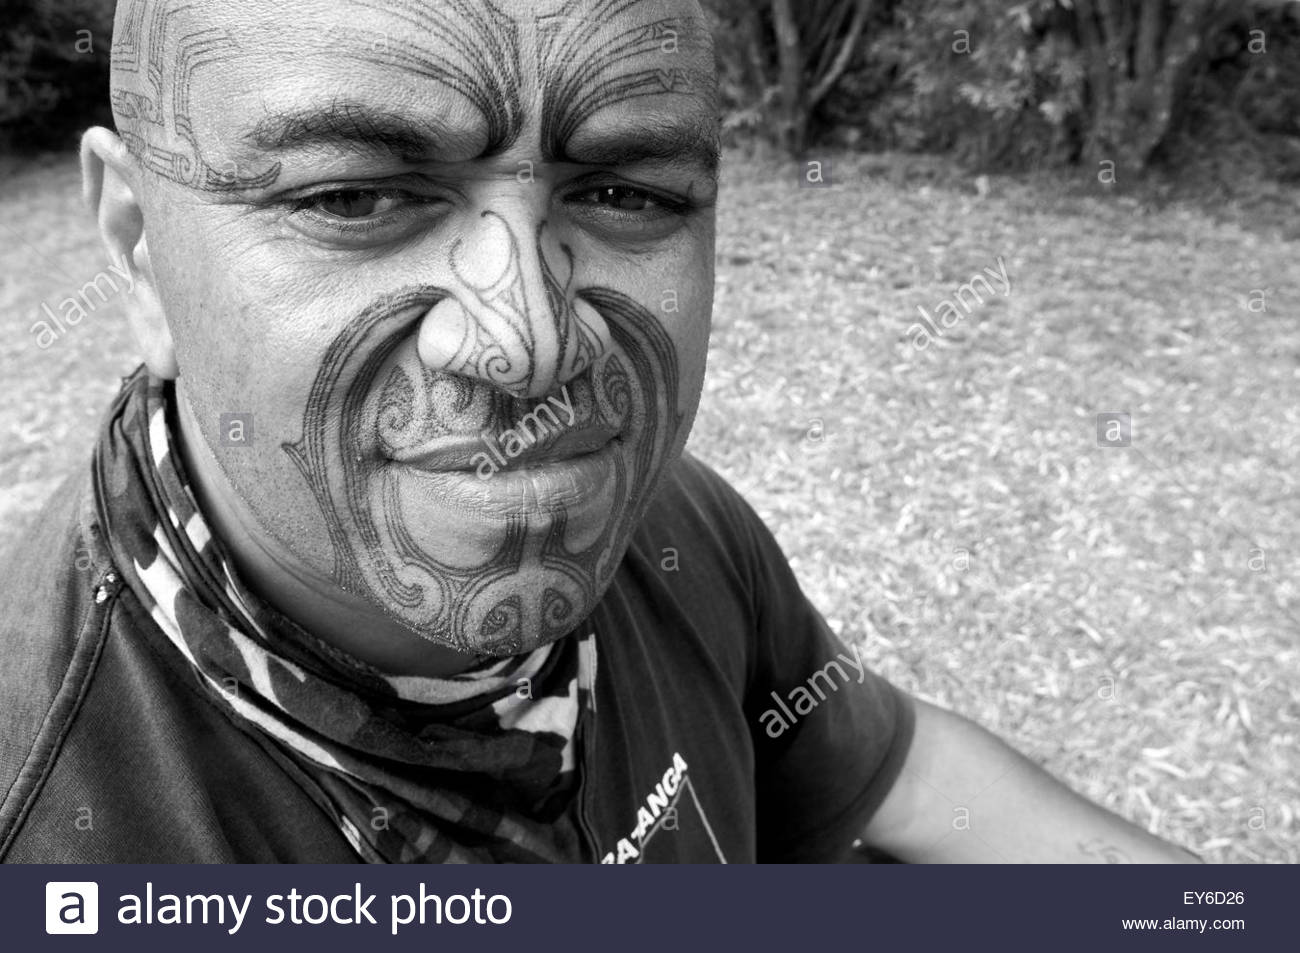 Portrait of a Maori participating in Waitangi Day annual commemorations on Waitangi Treaty Grounds, Bay of Islands, Stock Photo